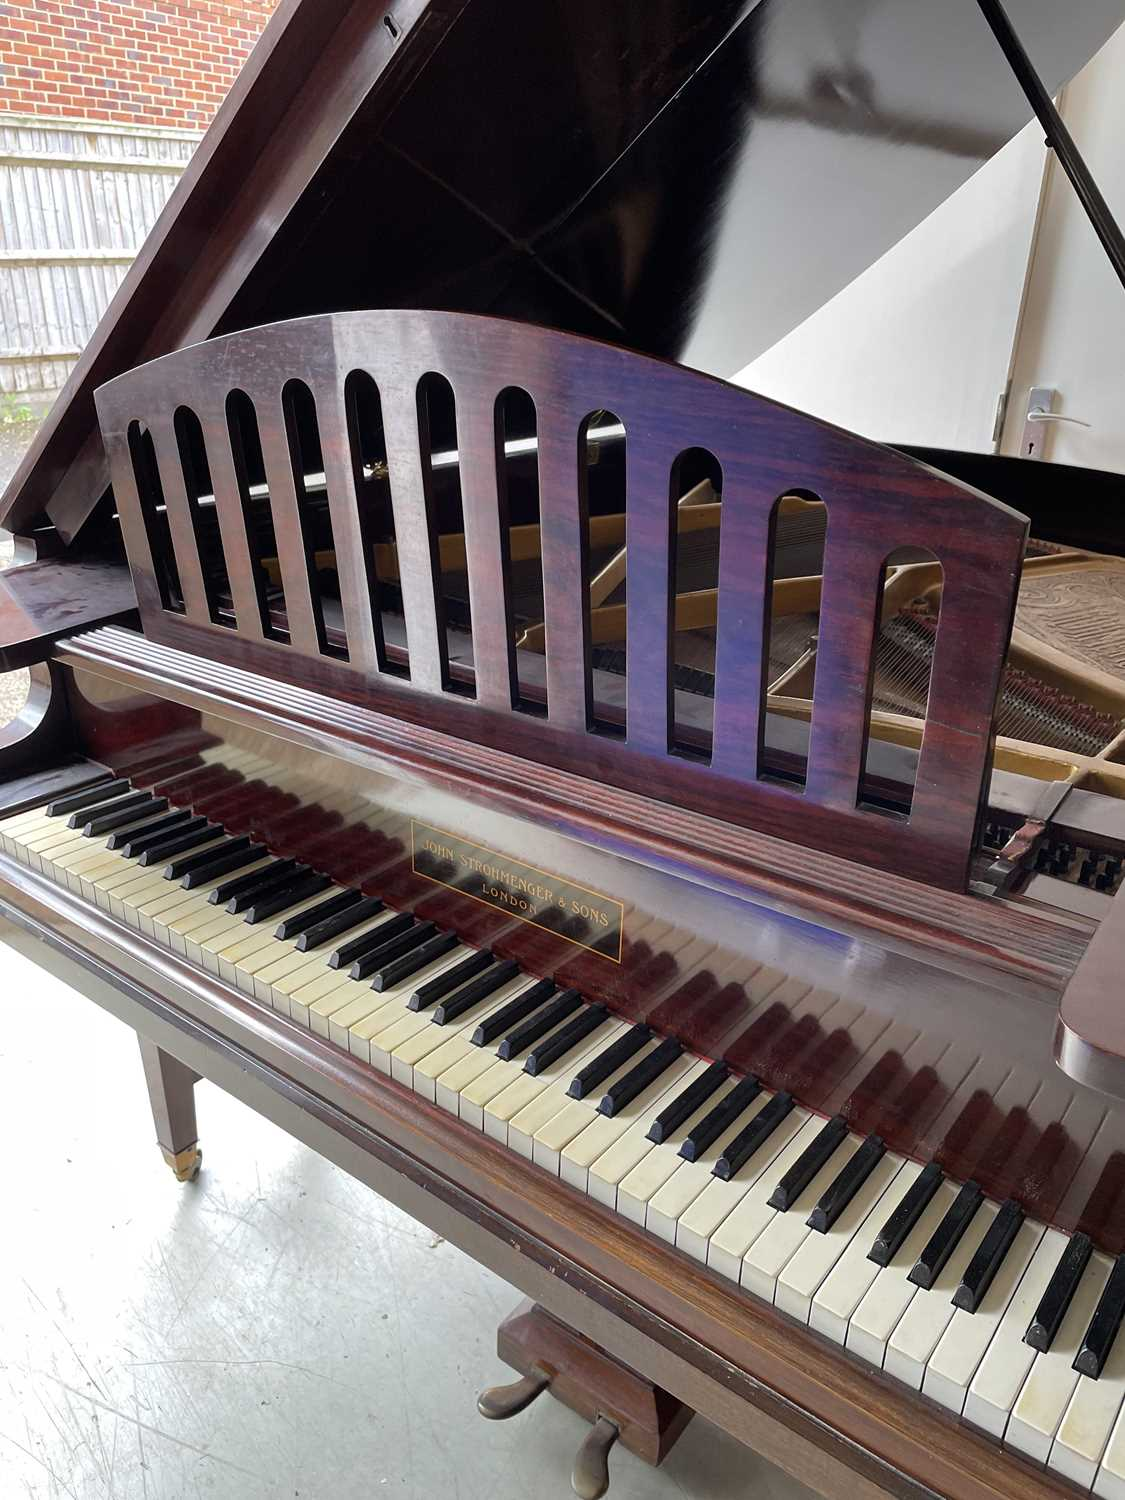 A mahogany cased baby grand piano, by John Strohmenger & Sons, London, 143 cm wide x 101 cm high x - Image 5 of 21